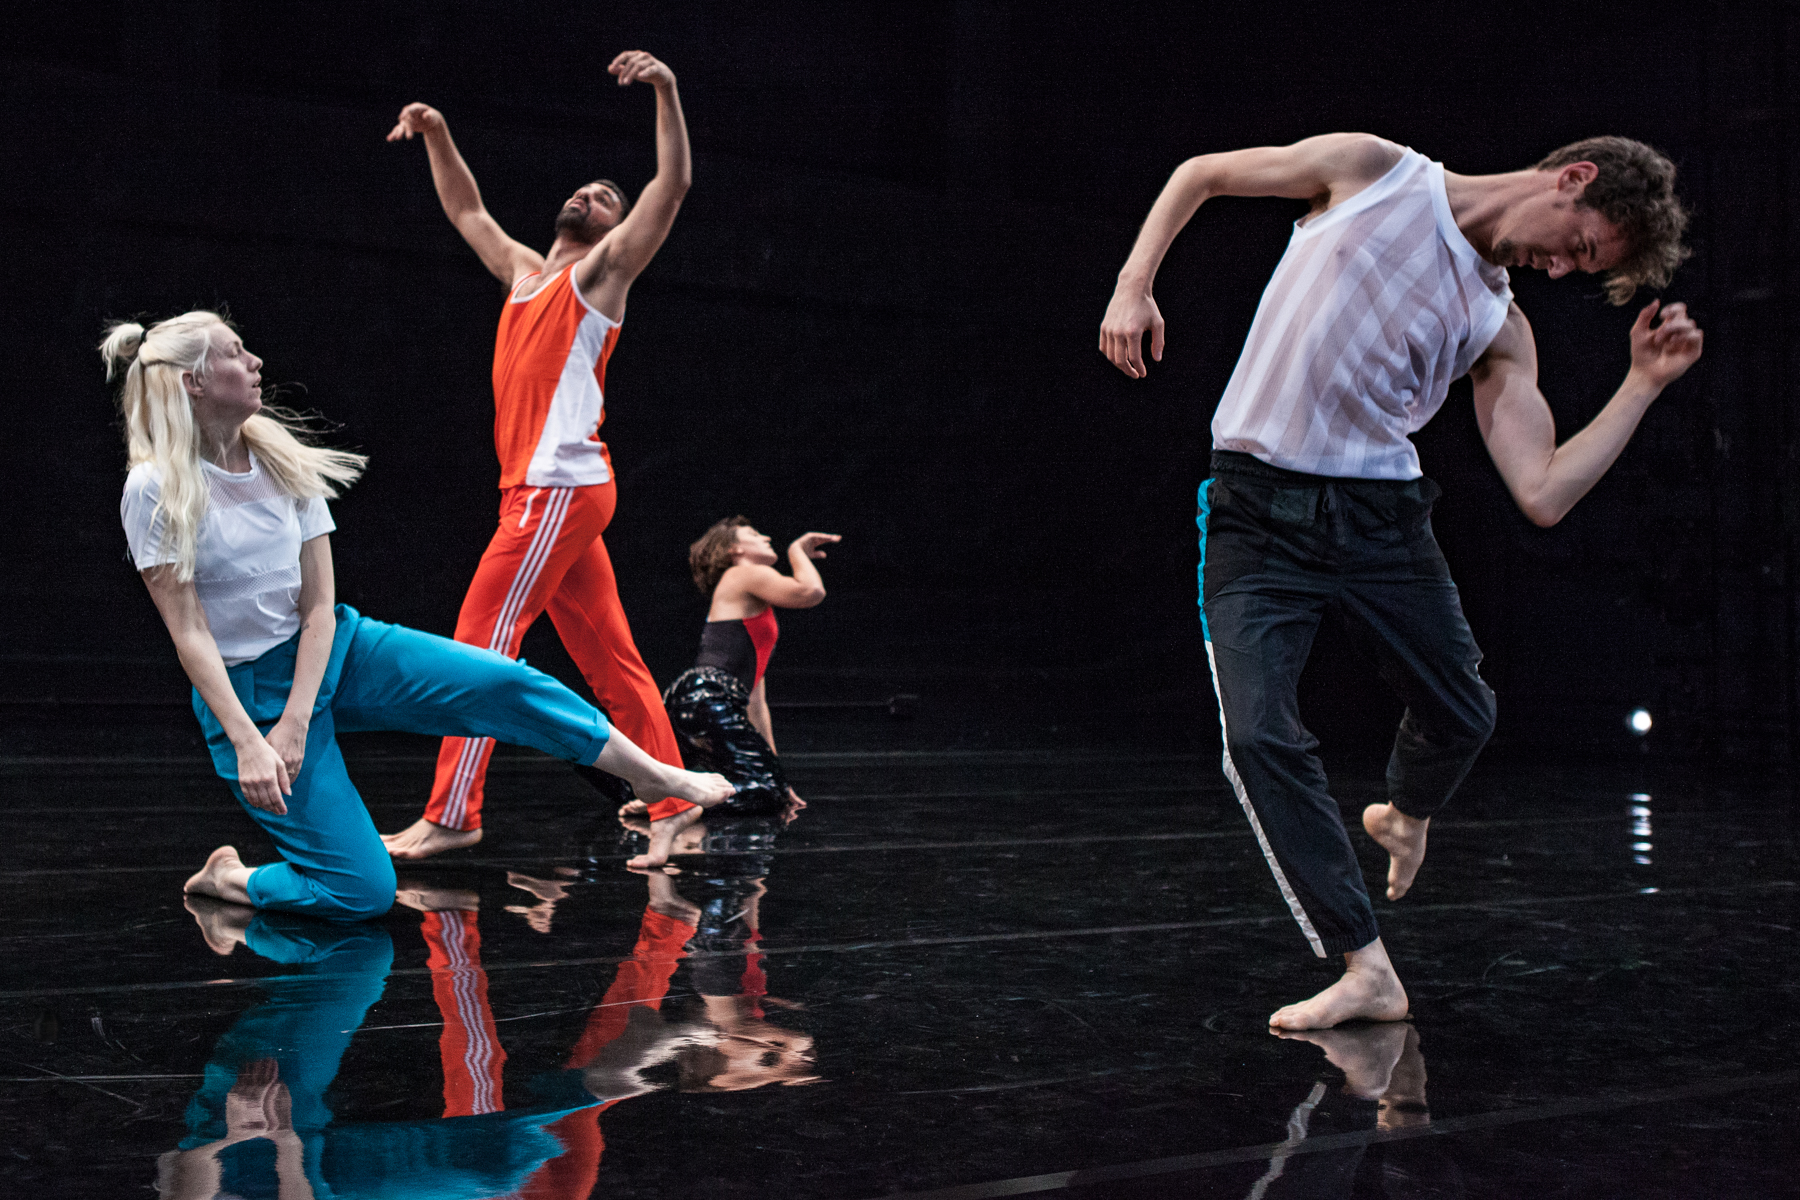 Joe Moran's 'On the Habit of Being Oneself' - Production/Dance photography